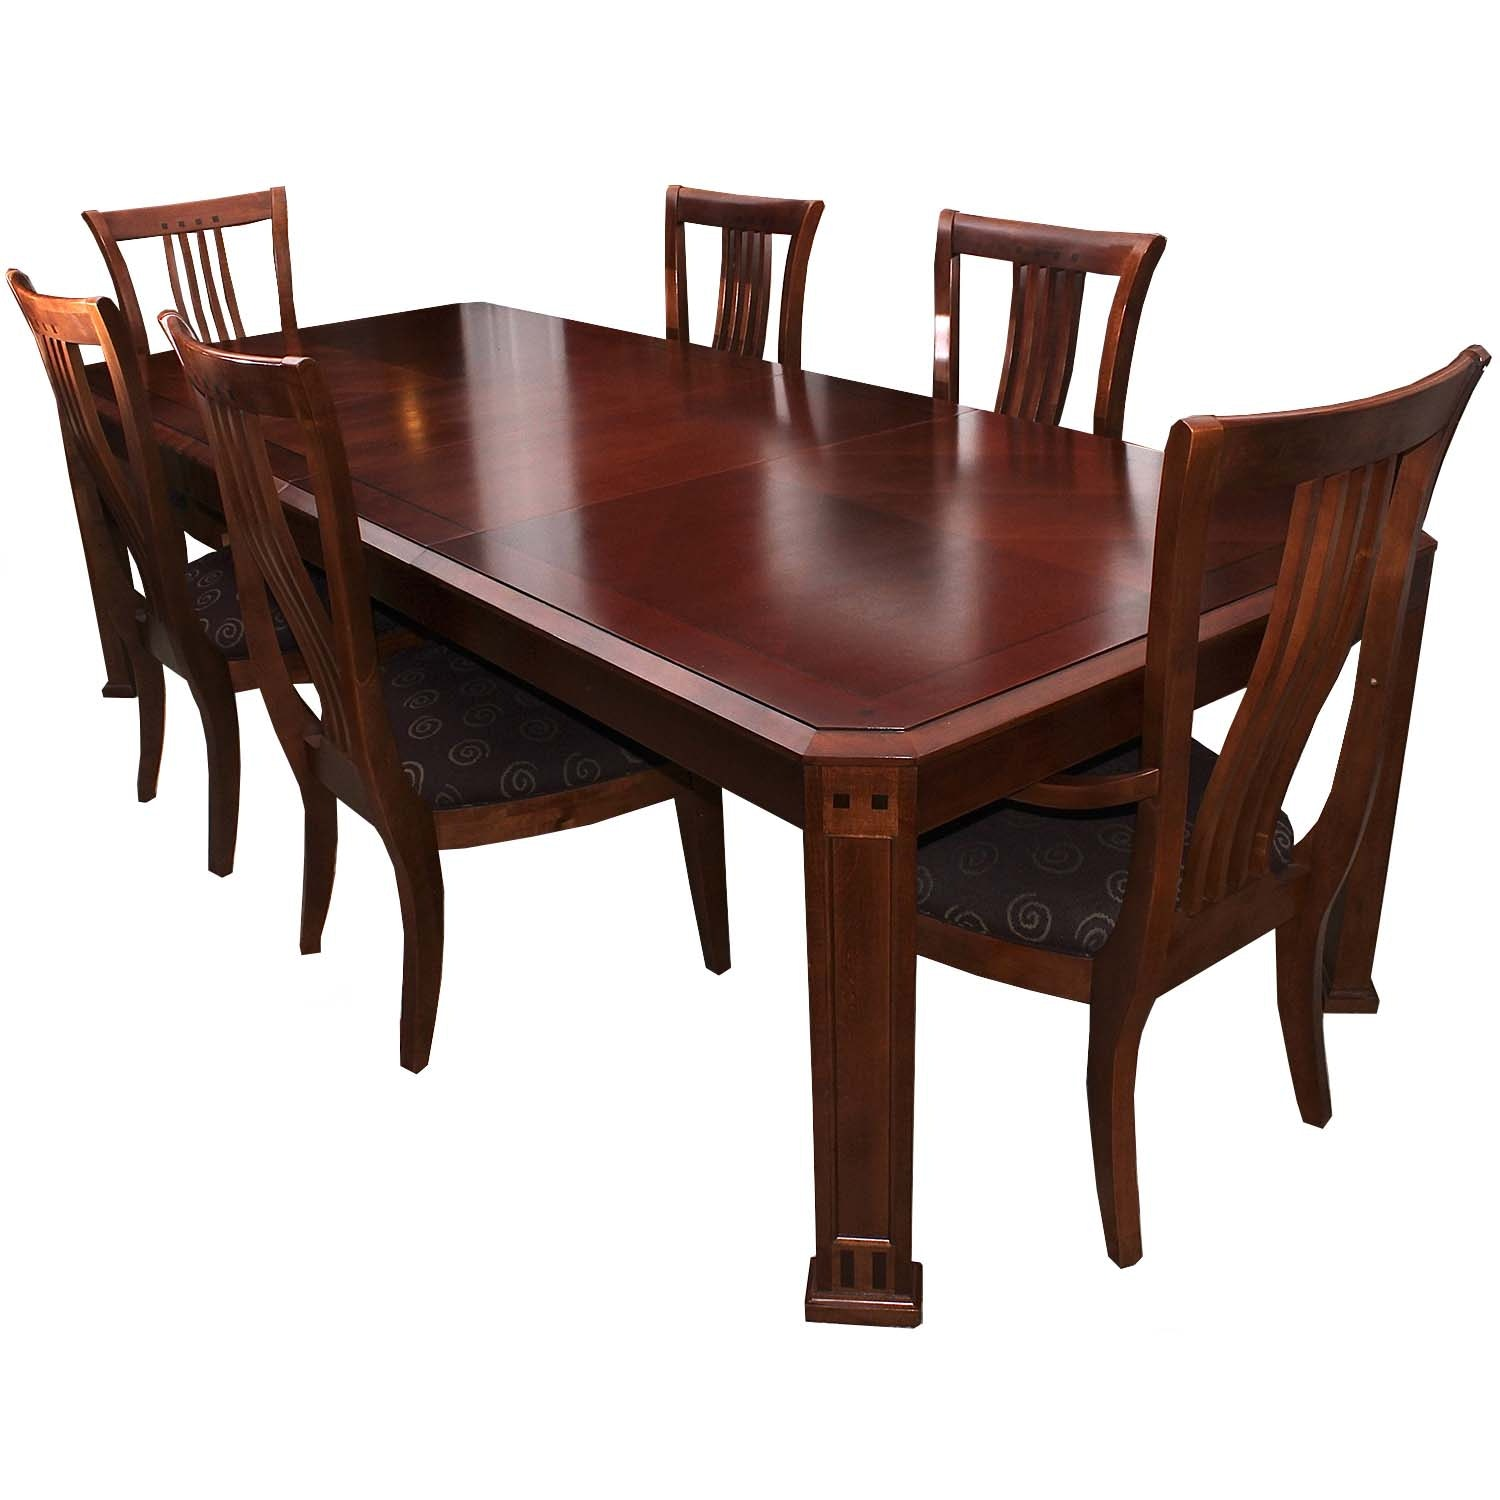 Thomasville Two-Leaf Dining Table and Chairs